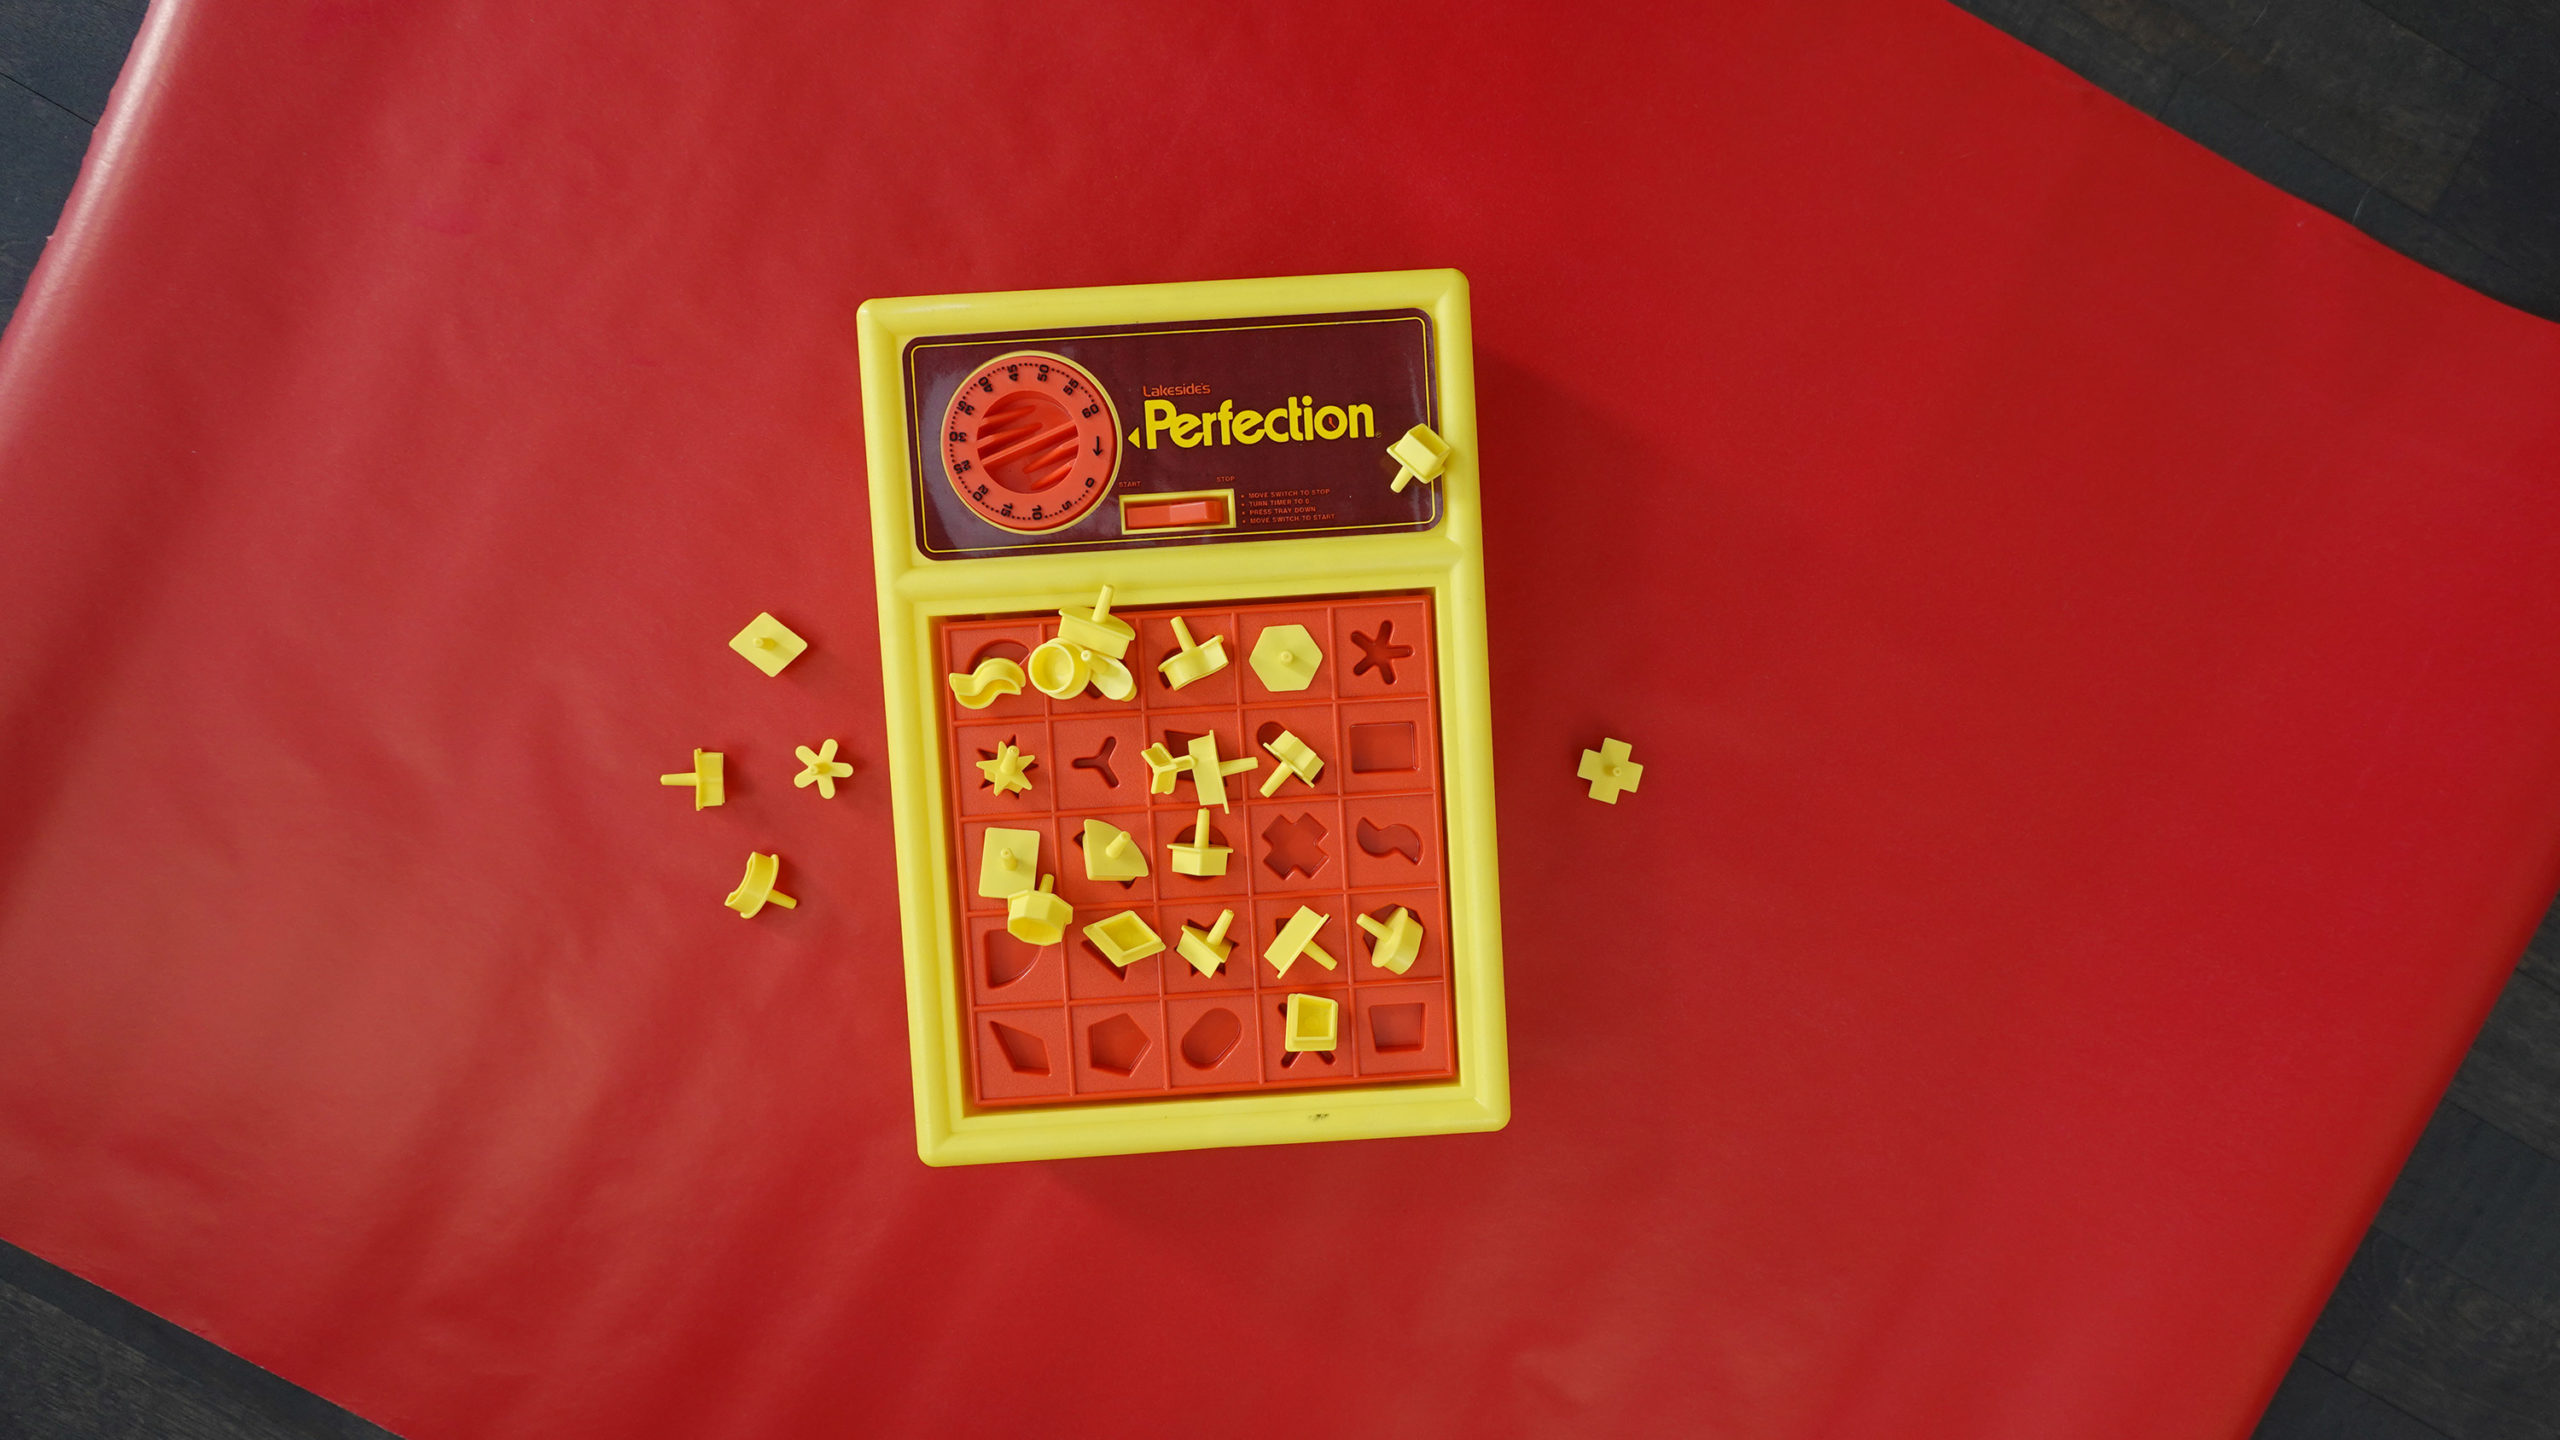 A game of perfection on red wrapping paper